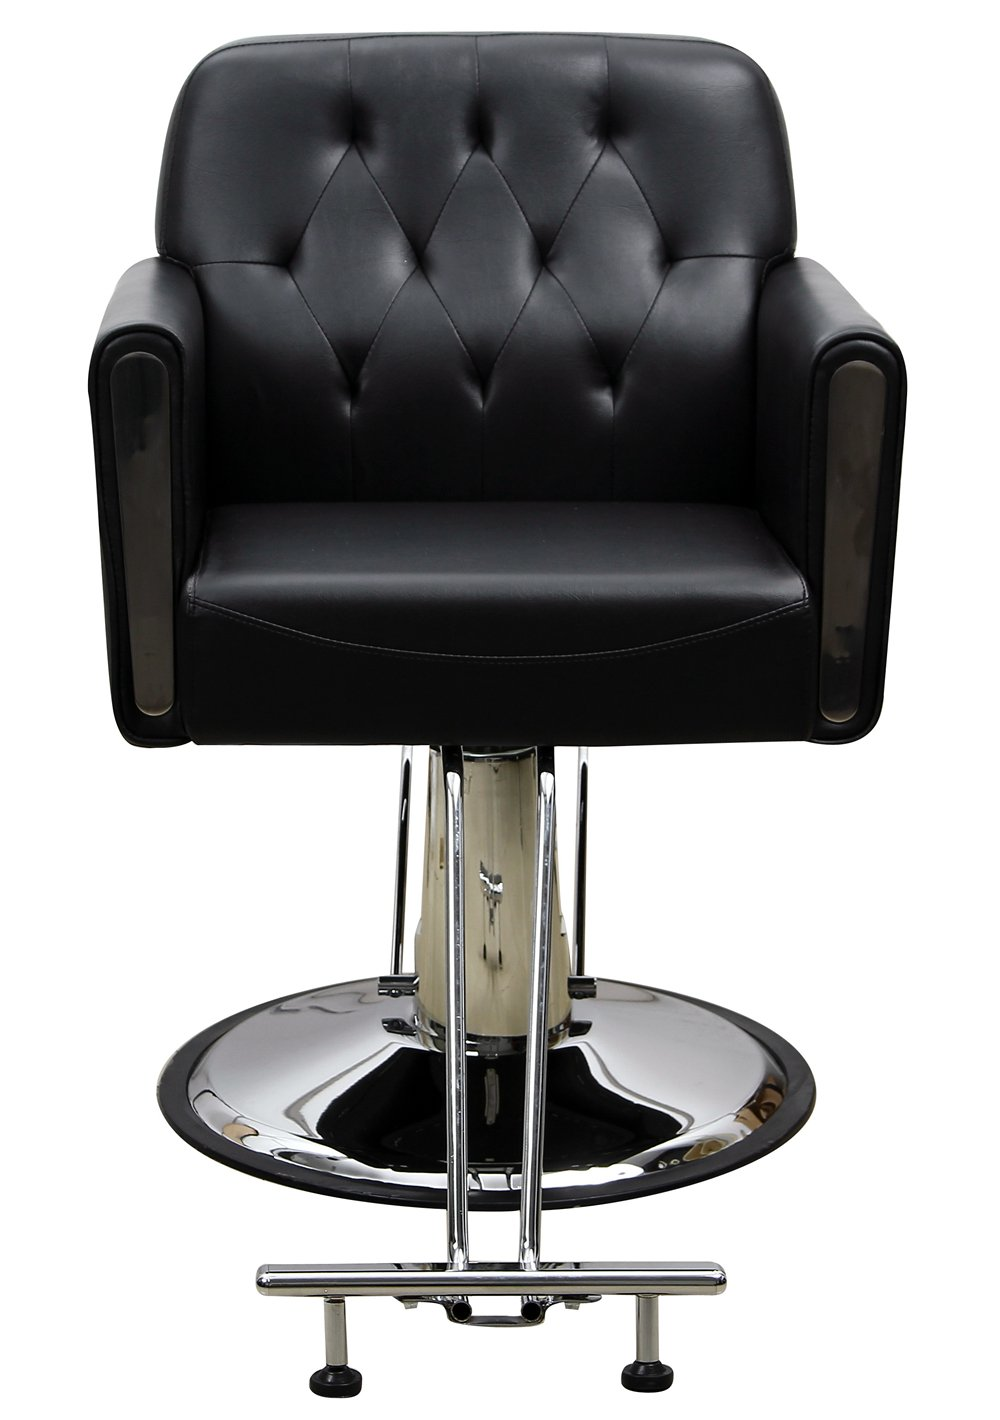 ShengYu Hydraulic Barber Chair Styling Salon Work Station Chair by Shengyu (Image #2)